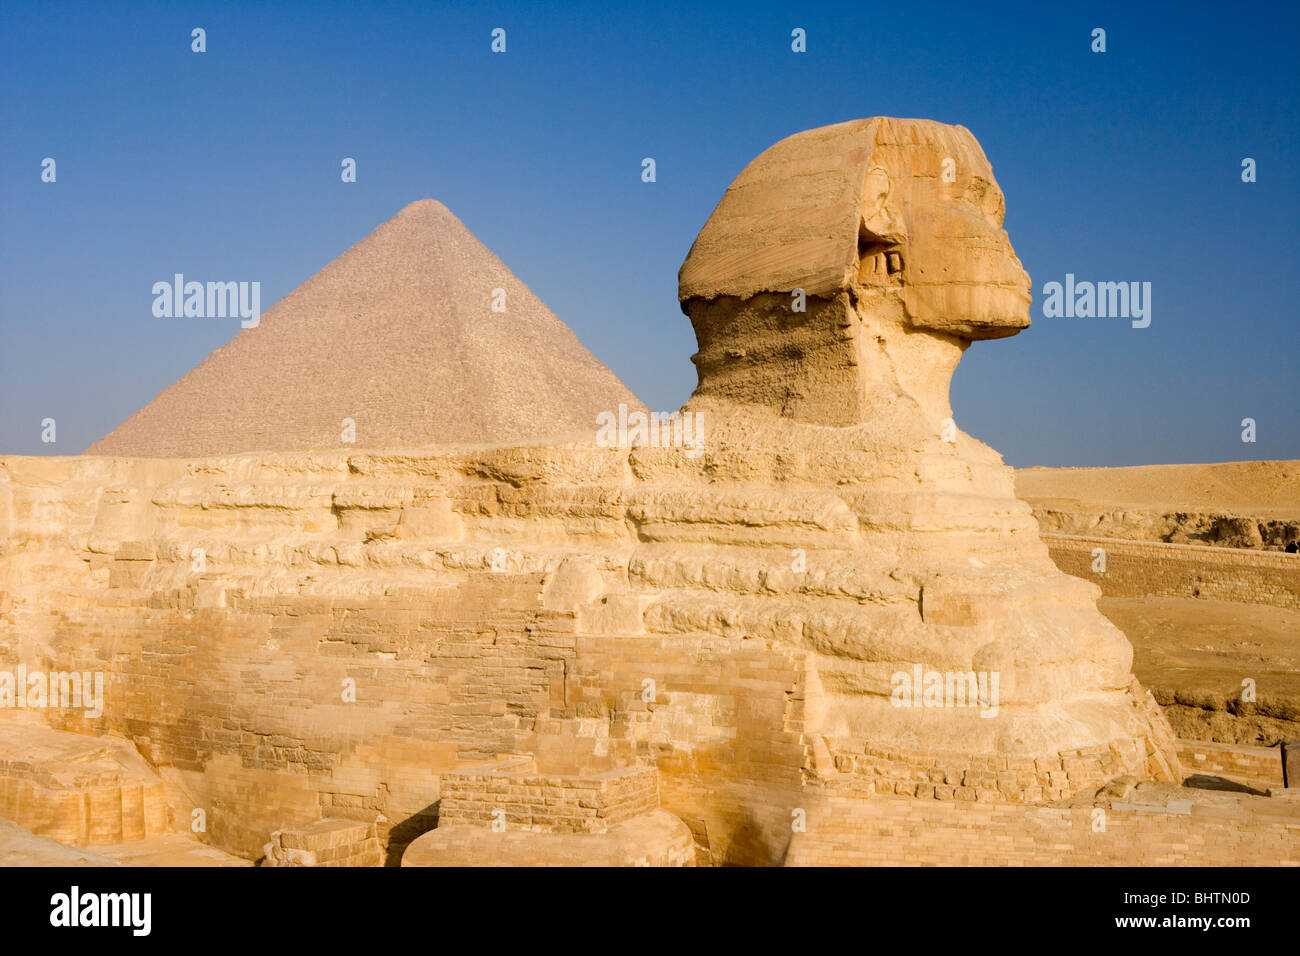 The Great Sphinx and Pyramid in Giza, Cairo, Egypt. Stock Photo